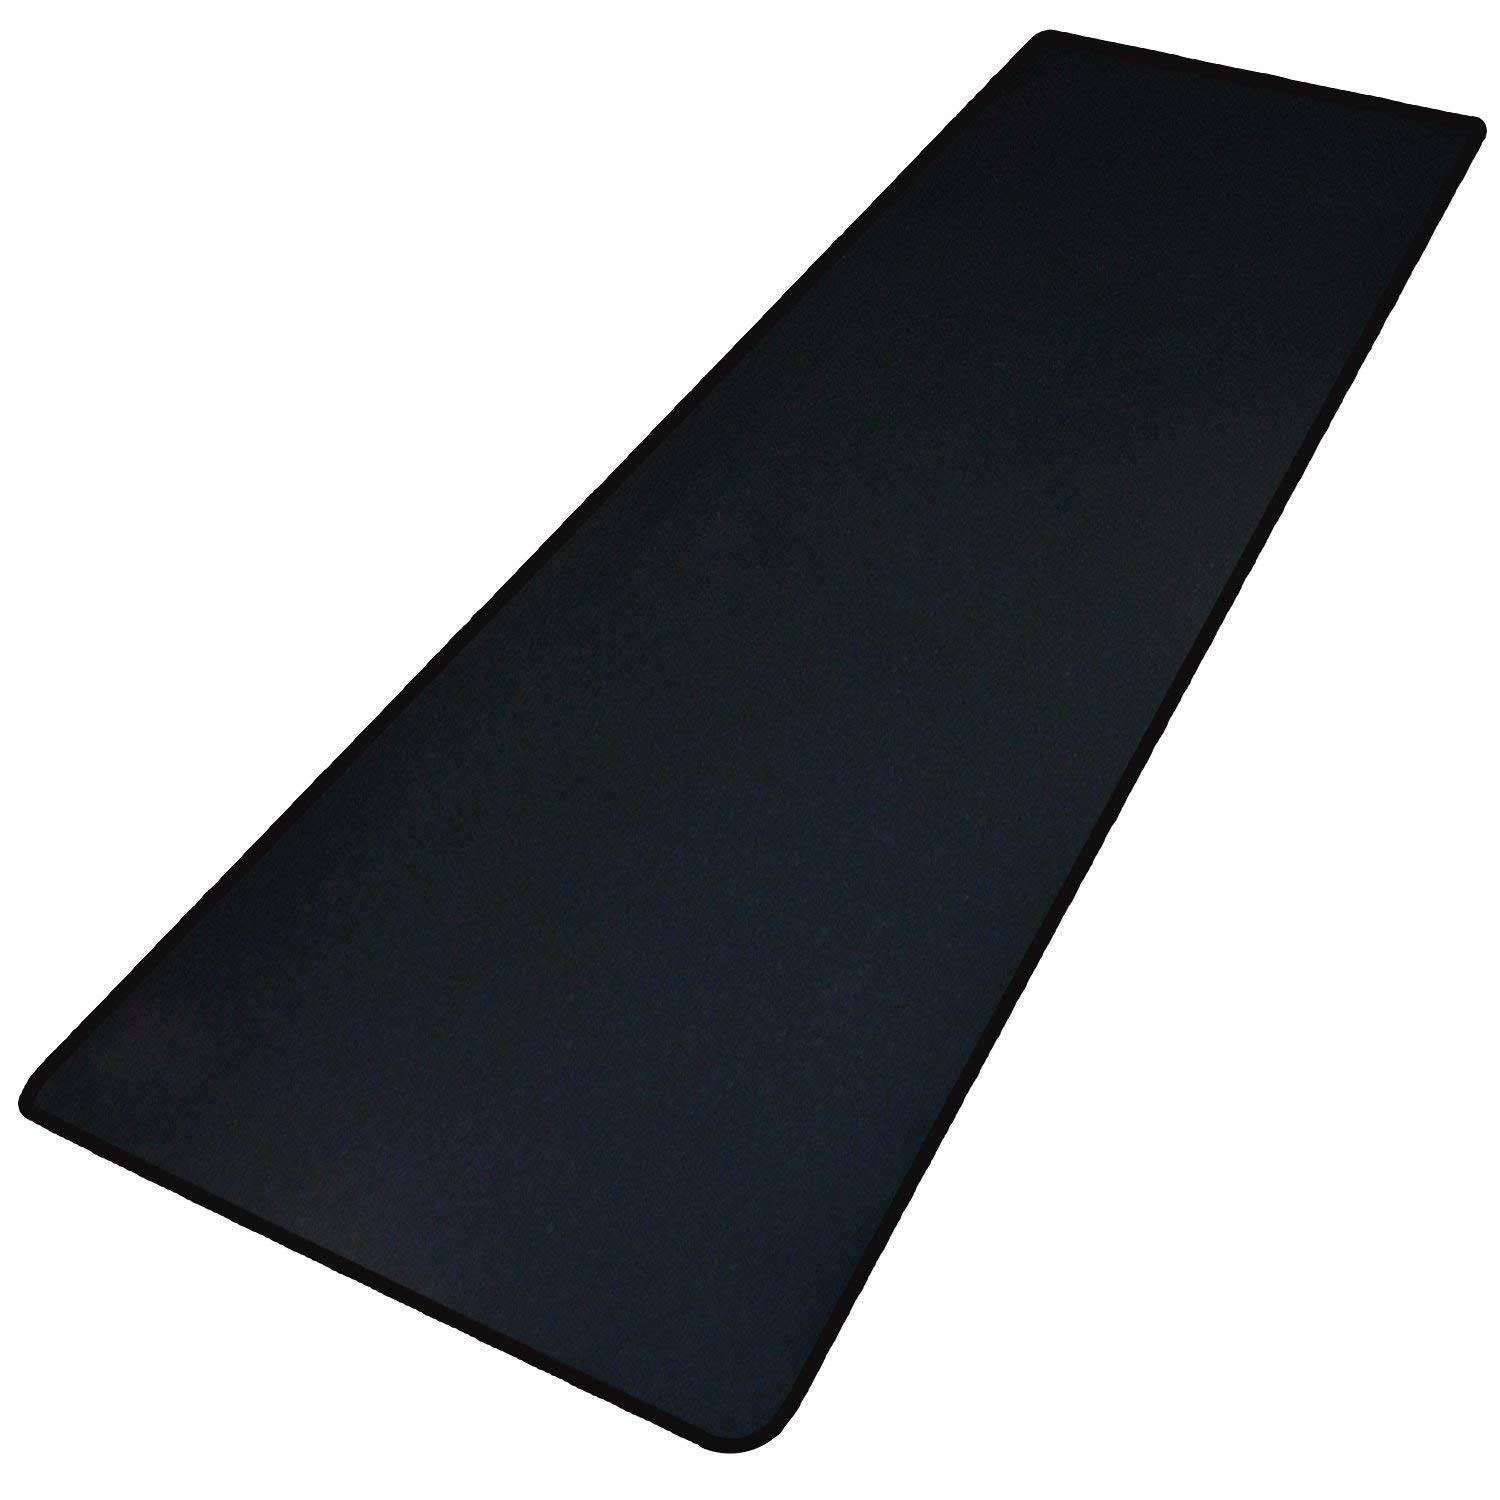 Extended High Precise Large Gaming Mouse Pad/Maximize to Enhances Control & Speed of The Mice/No-Slip Base/Extends The Battery Life of Wireless Mice- Extened Black